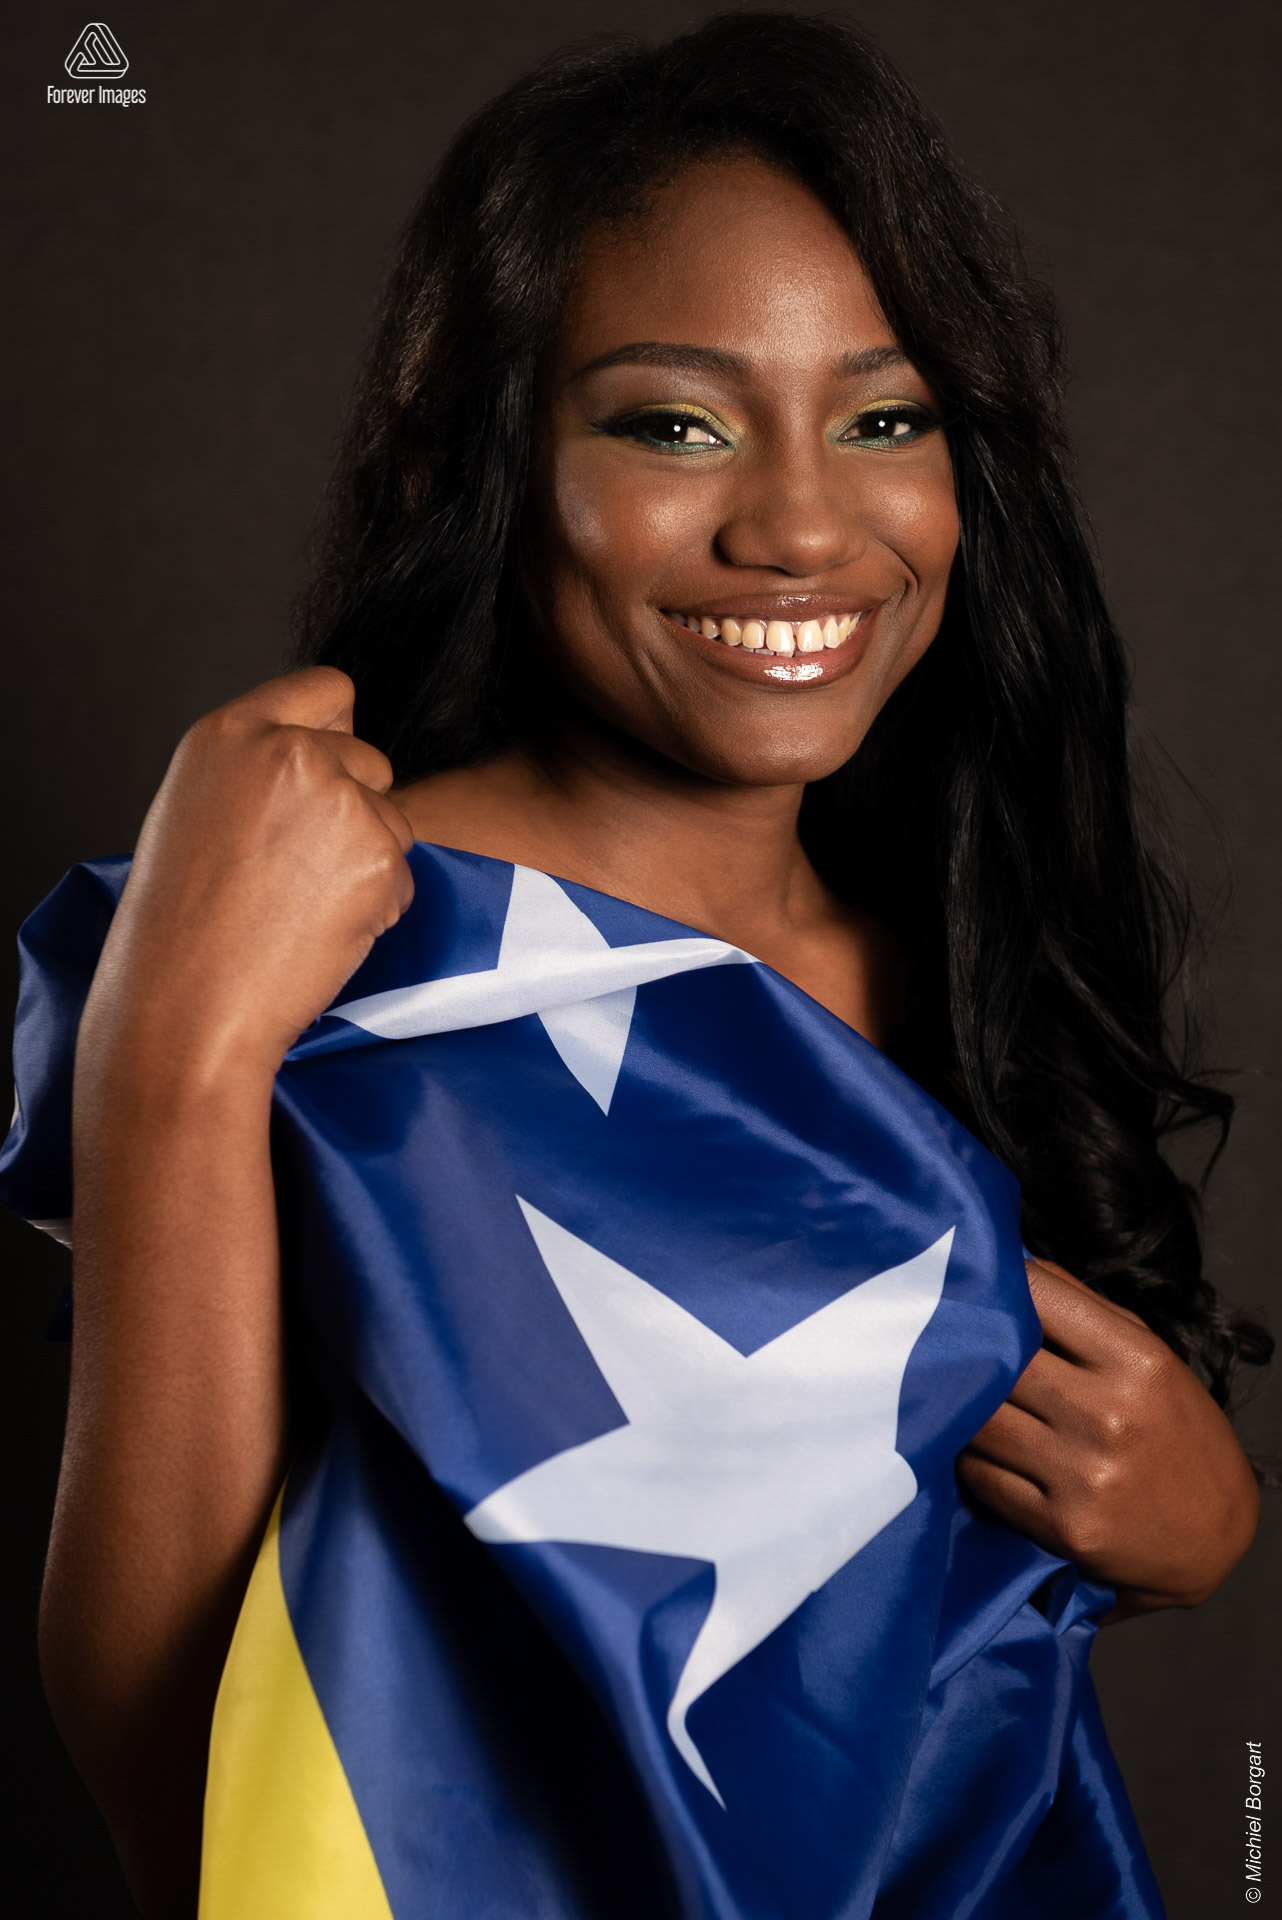 Portrait photo with national flag | Charliza Francisca Miss Planet Curacao Vicky Foundation | Portrait Photographer Michiel Borgart - Forever Images.